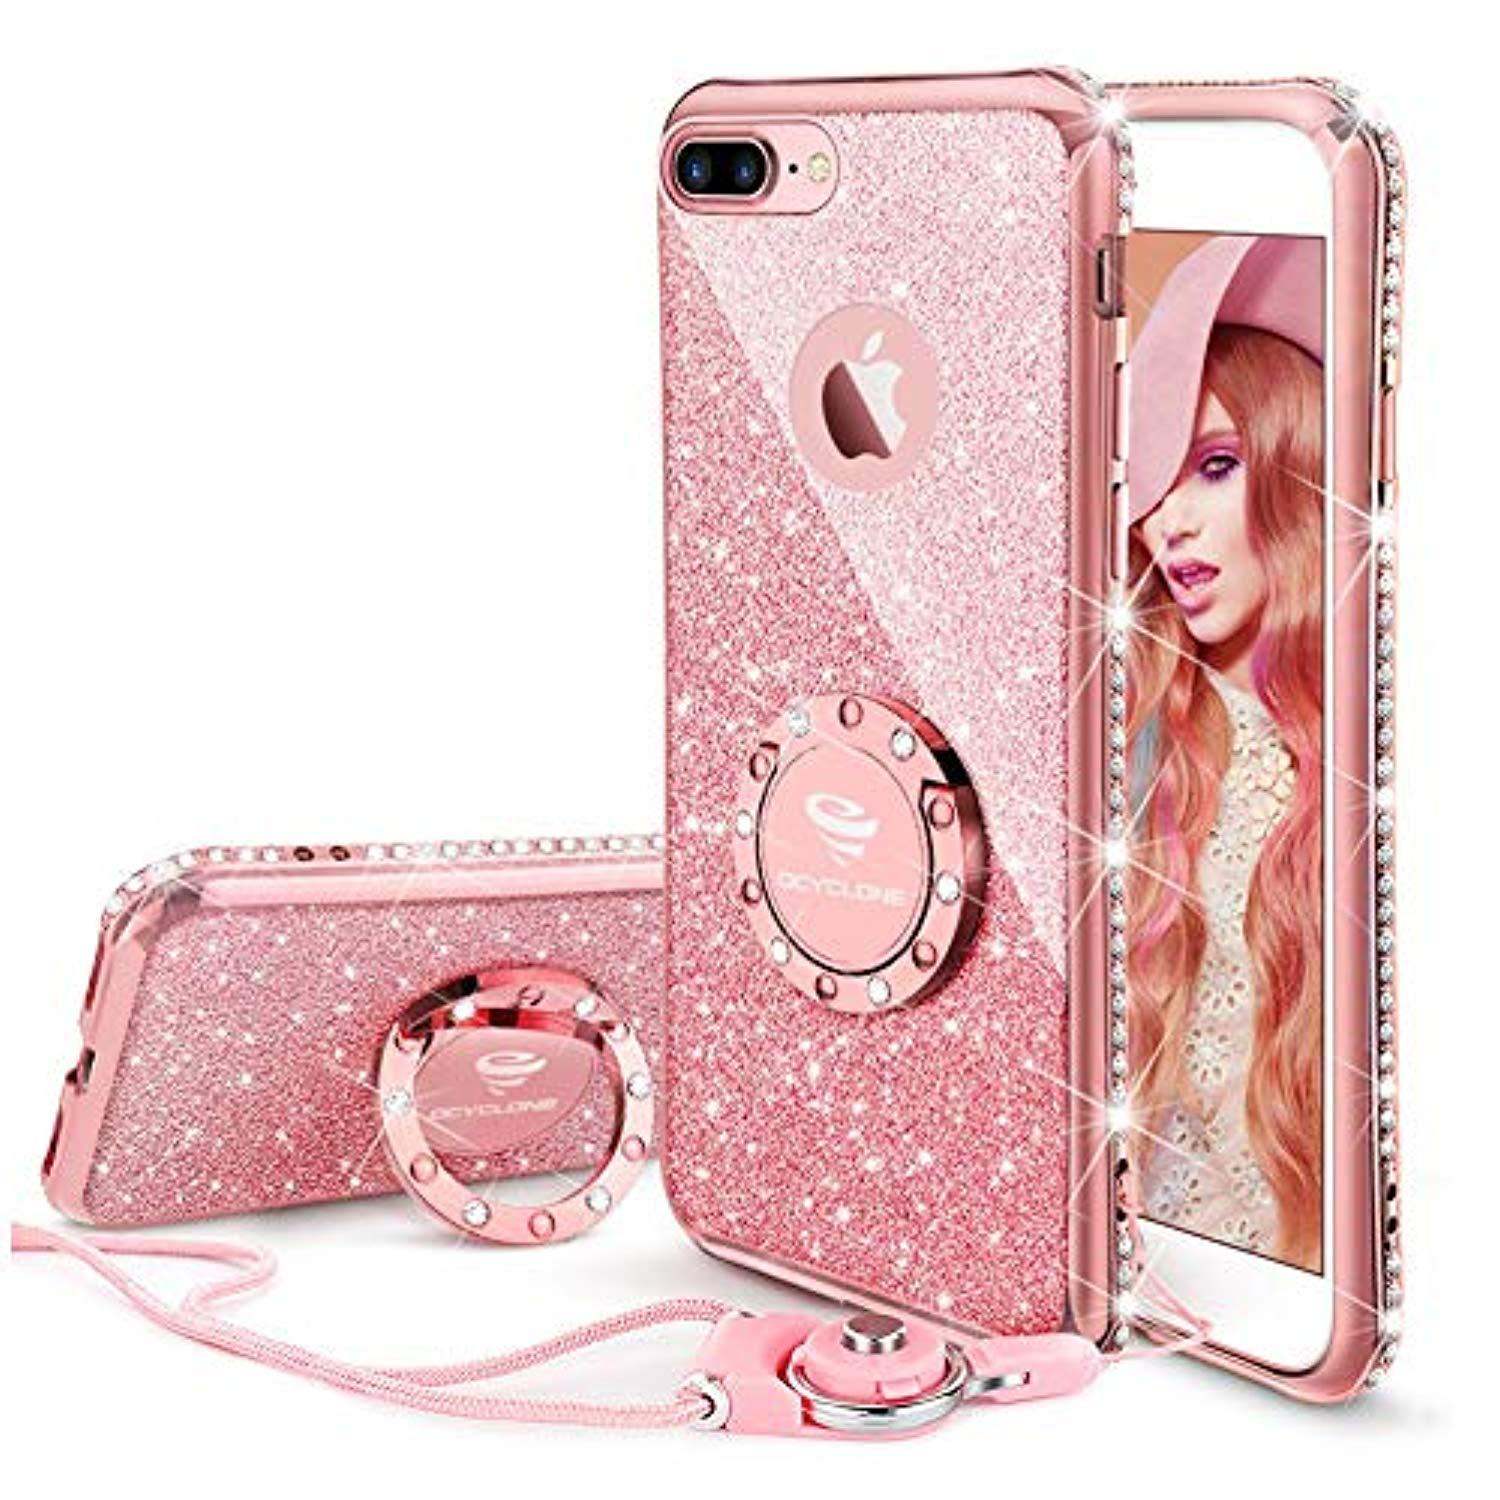 TEAM LUXURY Case for iPhone XR, Lavender Purple UNIQ Series Ultra Defender Shockproof Hybrid Slim Protective Cover Phone Case for Apple iPhone XR 6.1